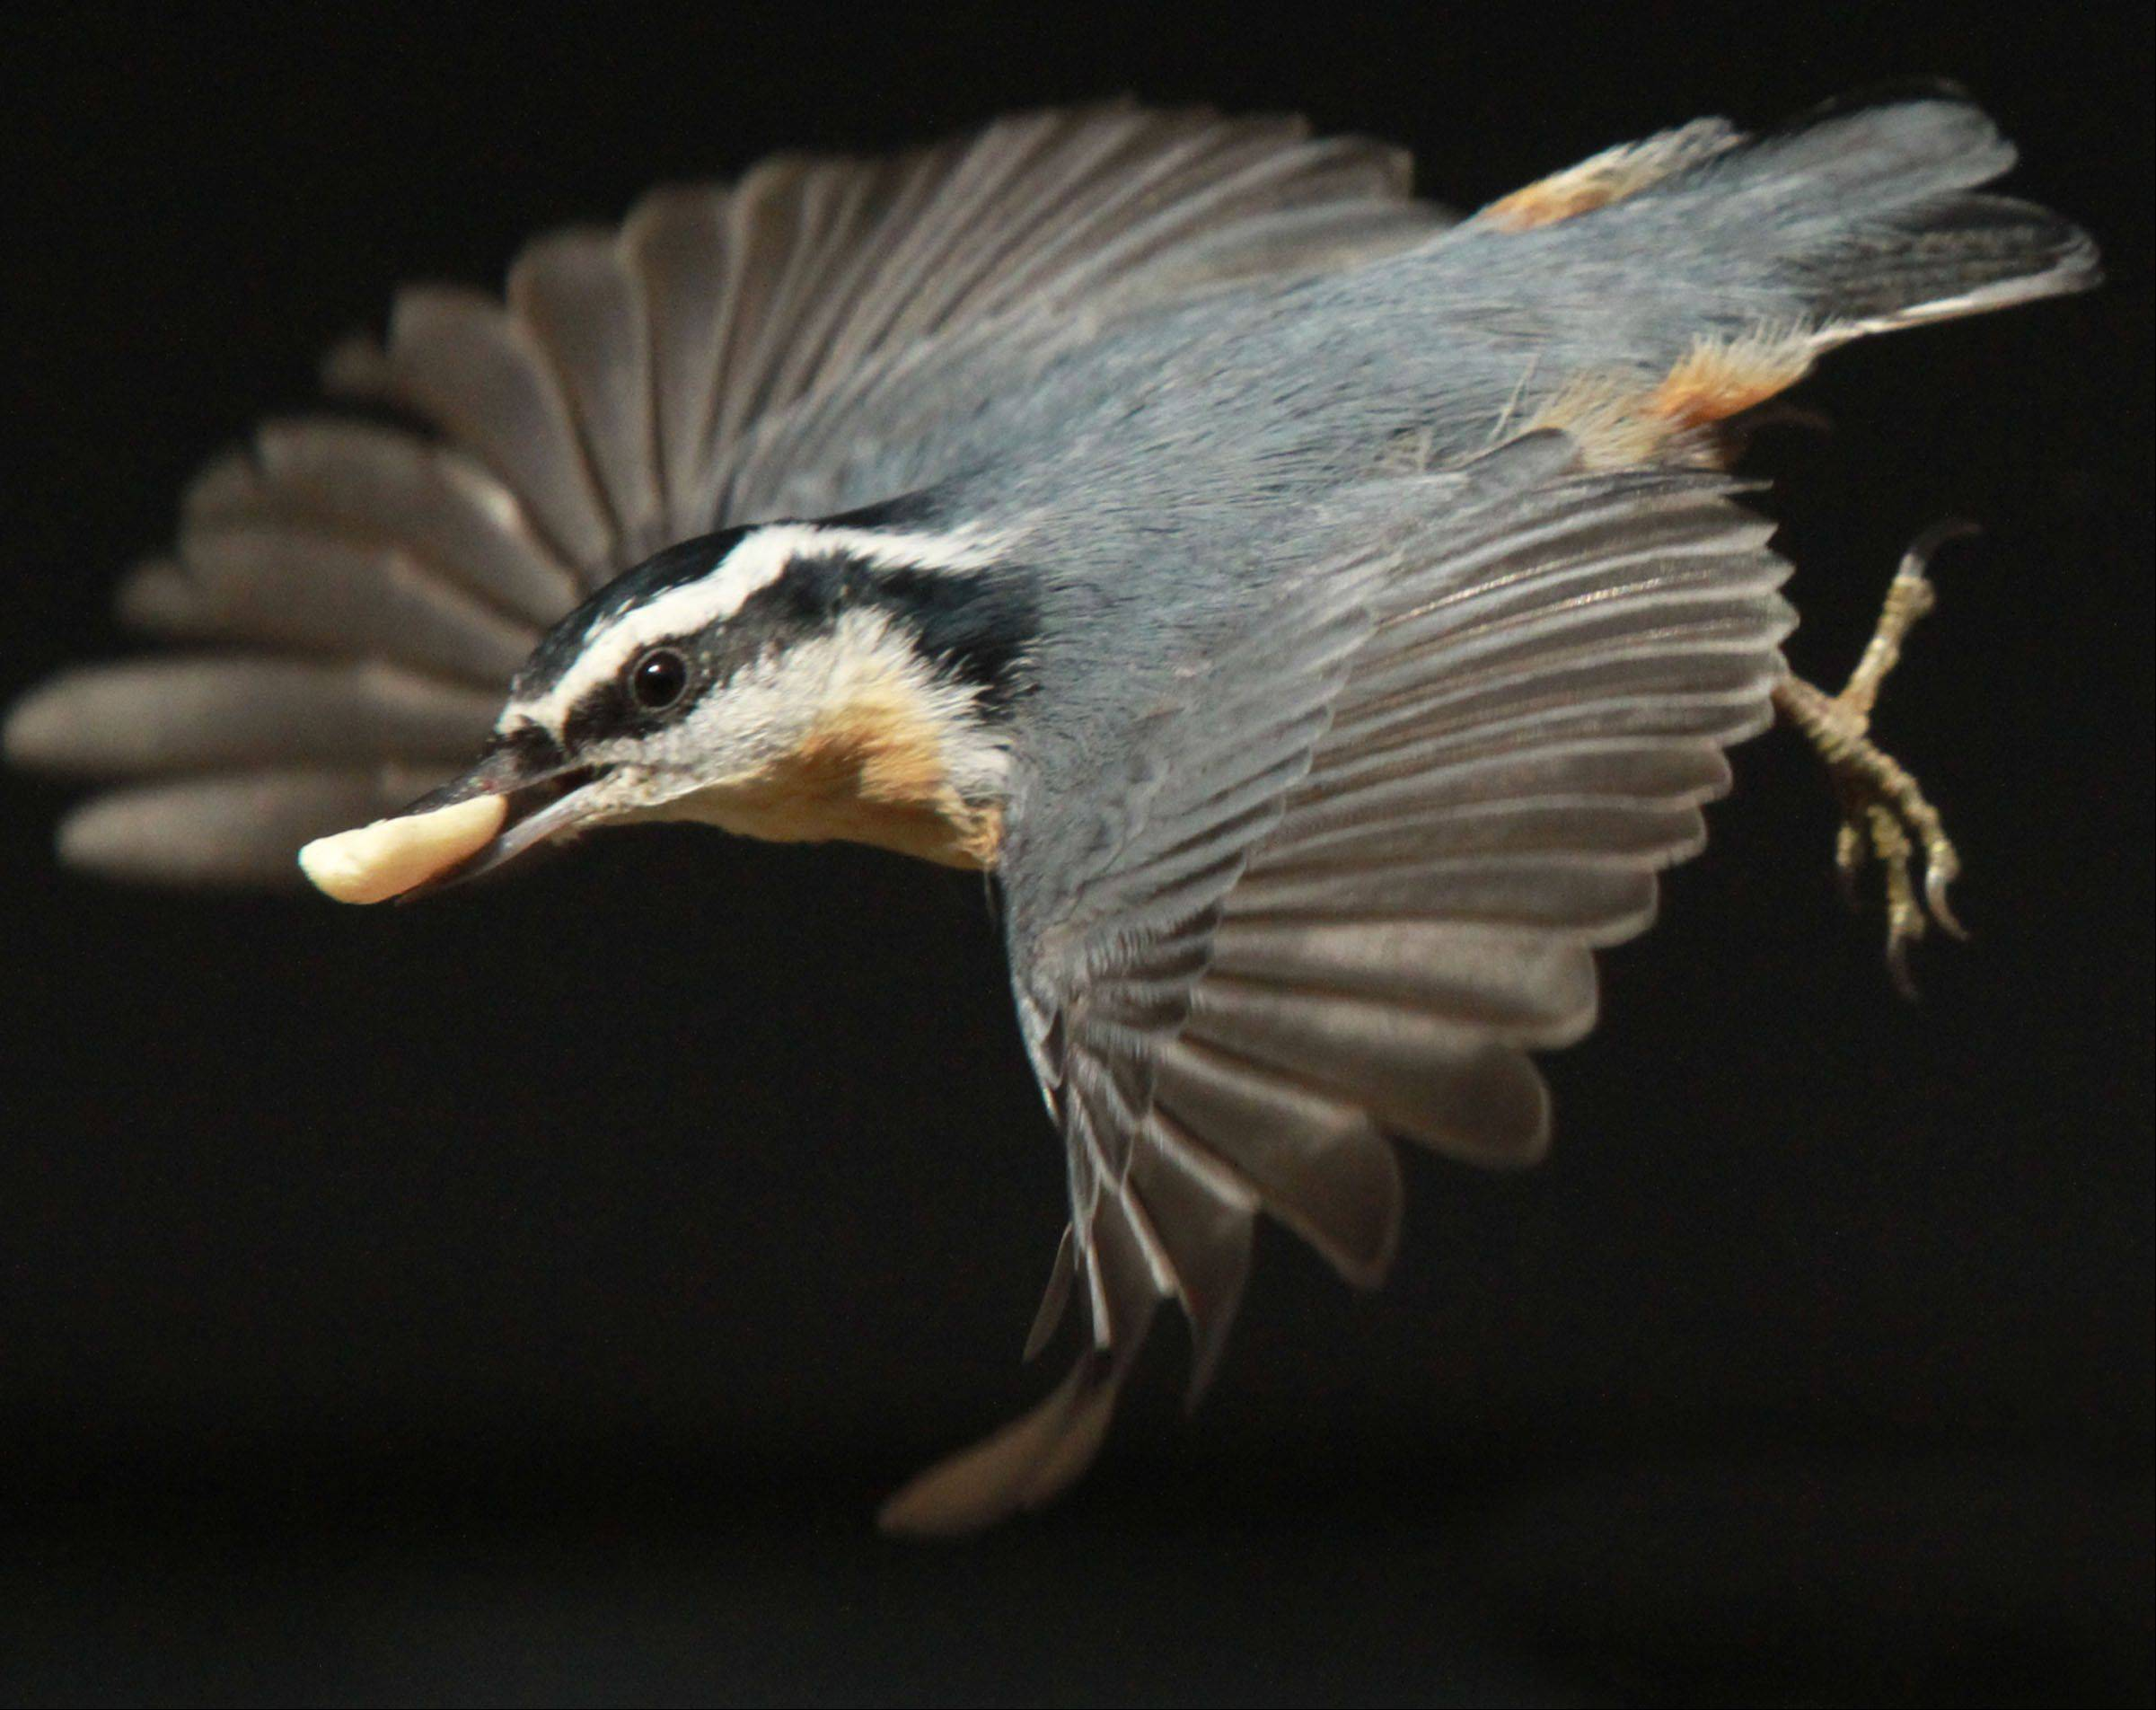 A male red-breasted nuthatch with a wingspan of seven inches dives off a feeder in Glenview on Nov. 11 with a peanut, his favorite food, in his beak. The four-inch-long bird hides the peanuts in a nearby tree's bark and comes back for more for hours at a time.